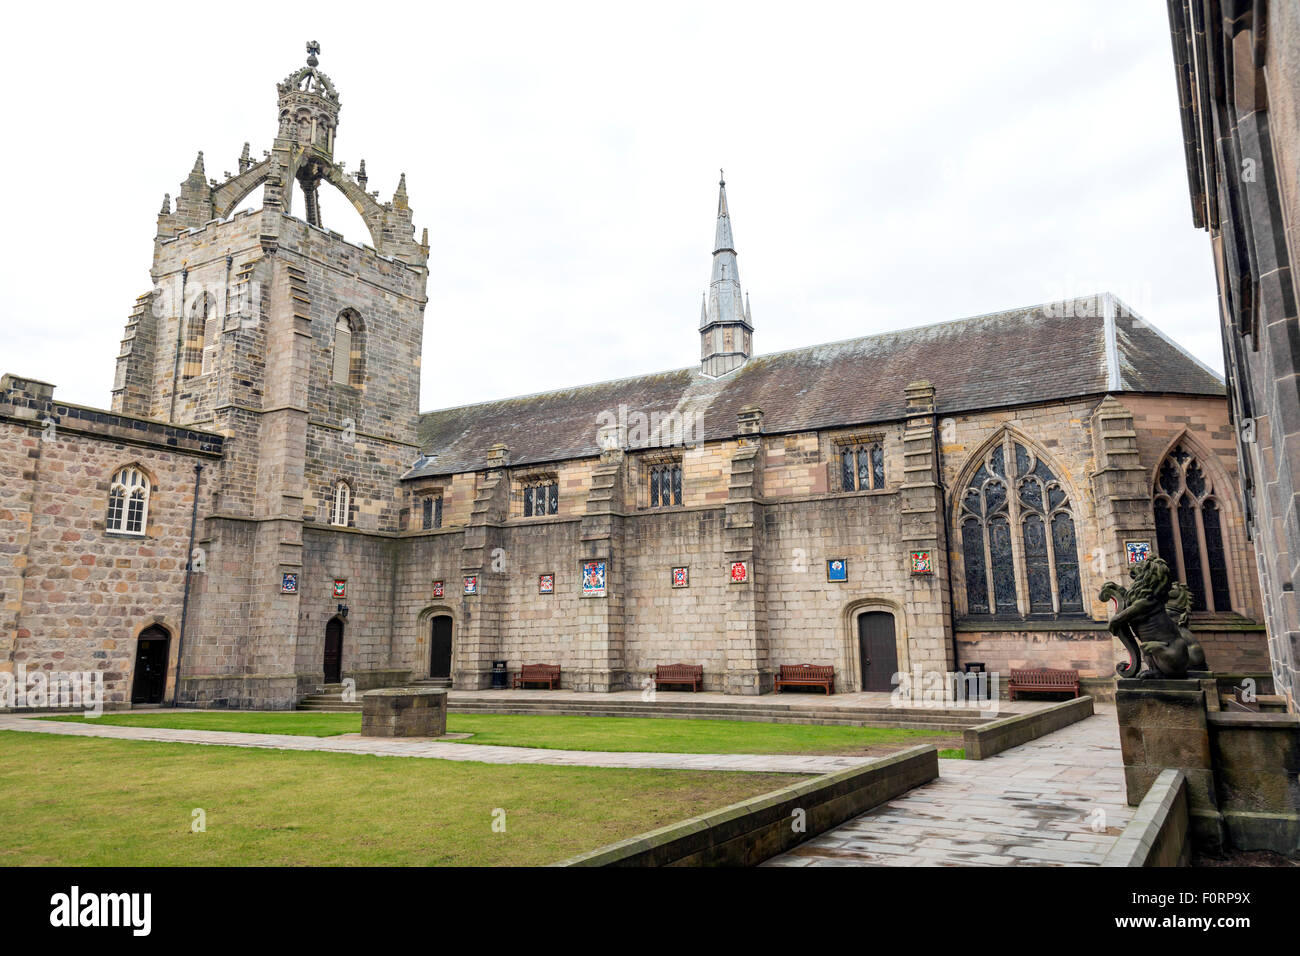 Quadrangle at King's College, Aberdeen University, Scotland, UK - Stock Image